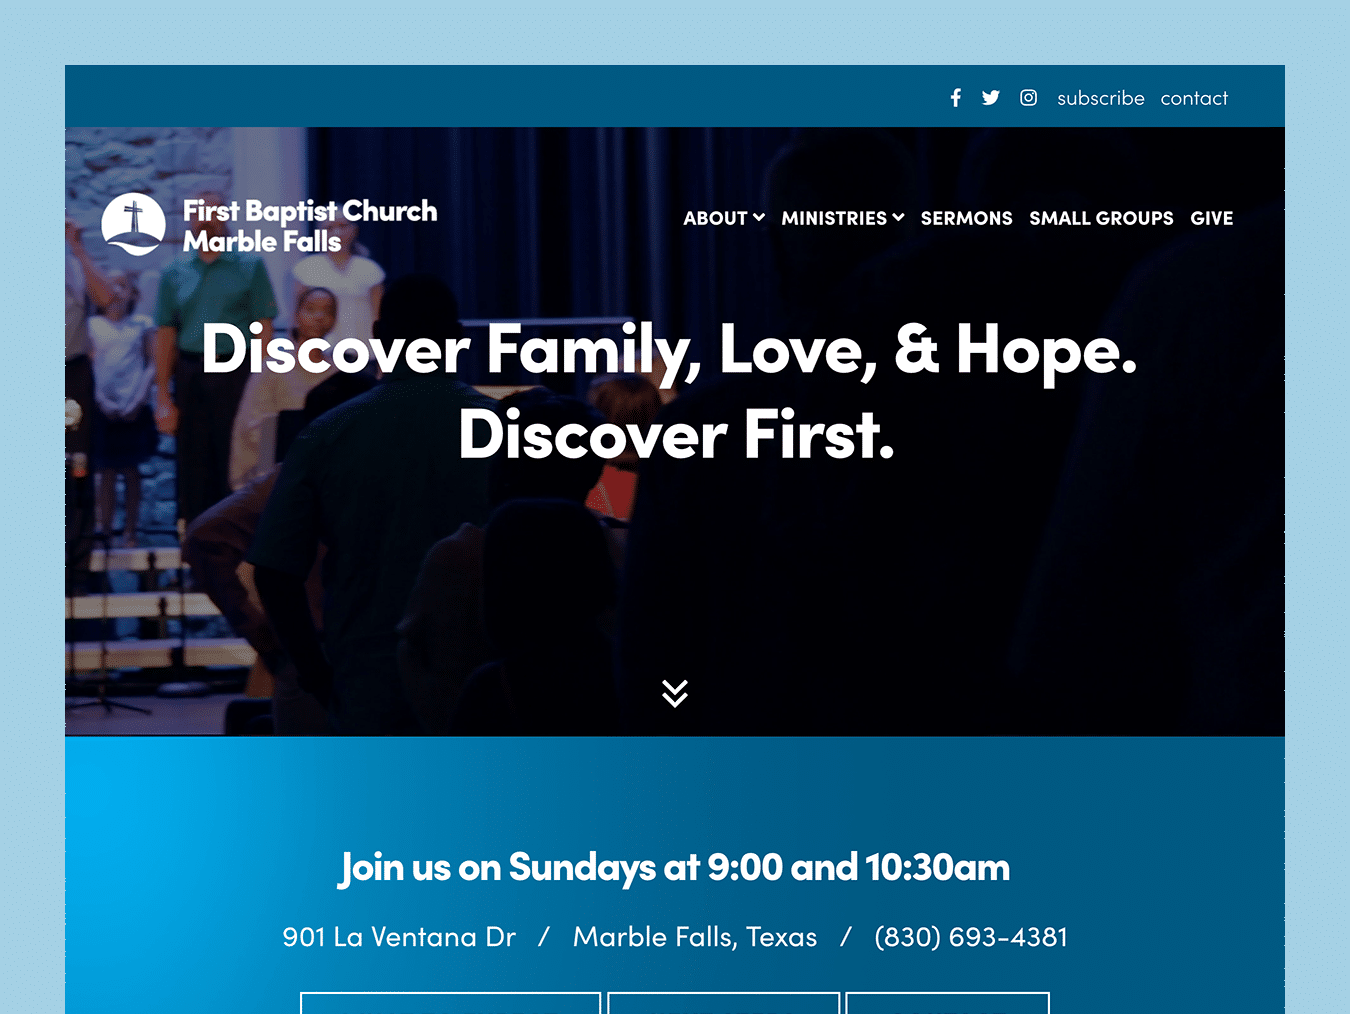 first-baptist-church-web-design-featured